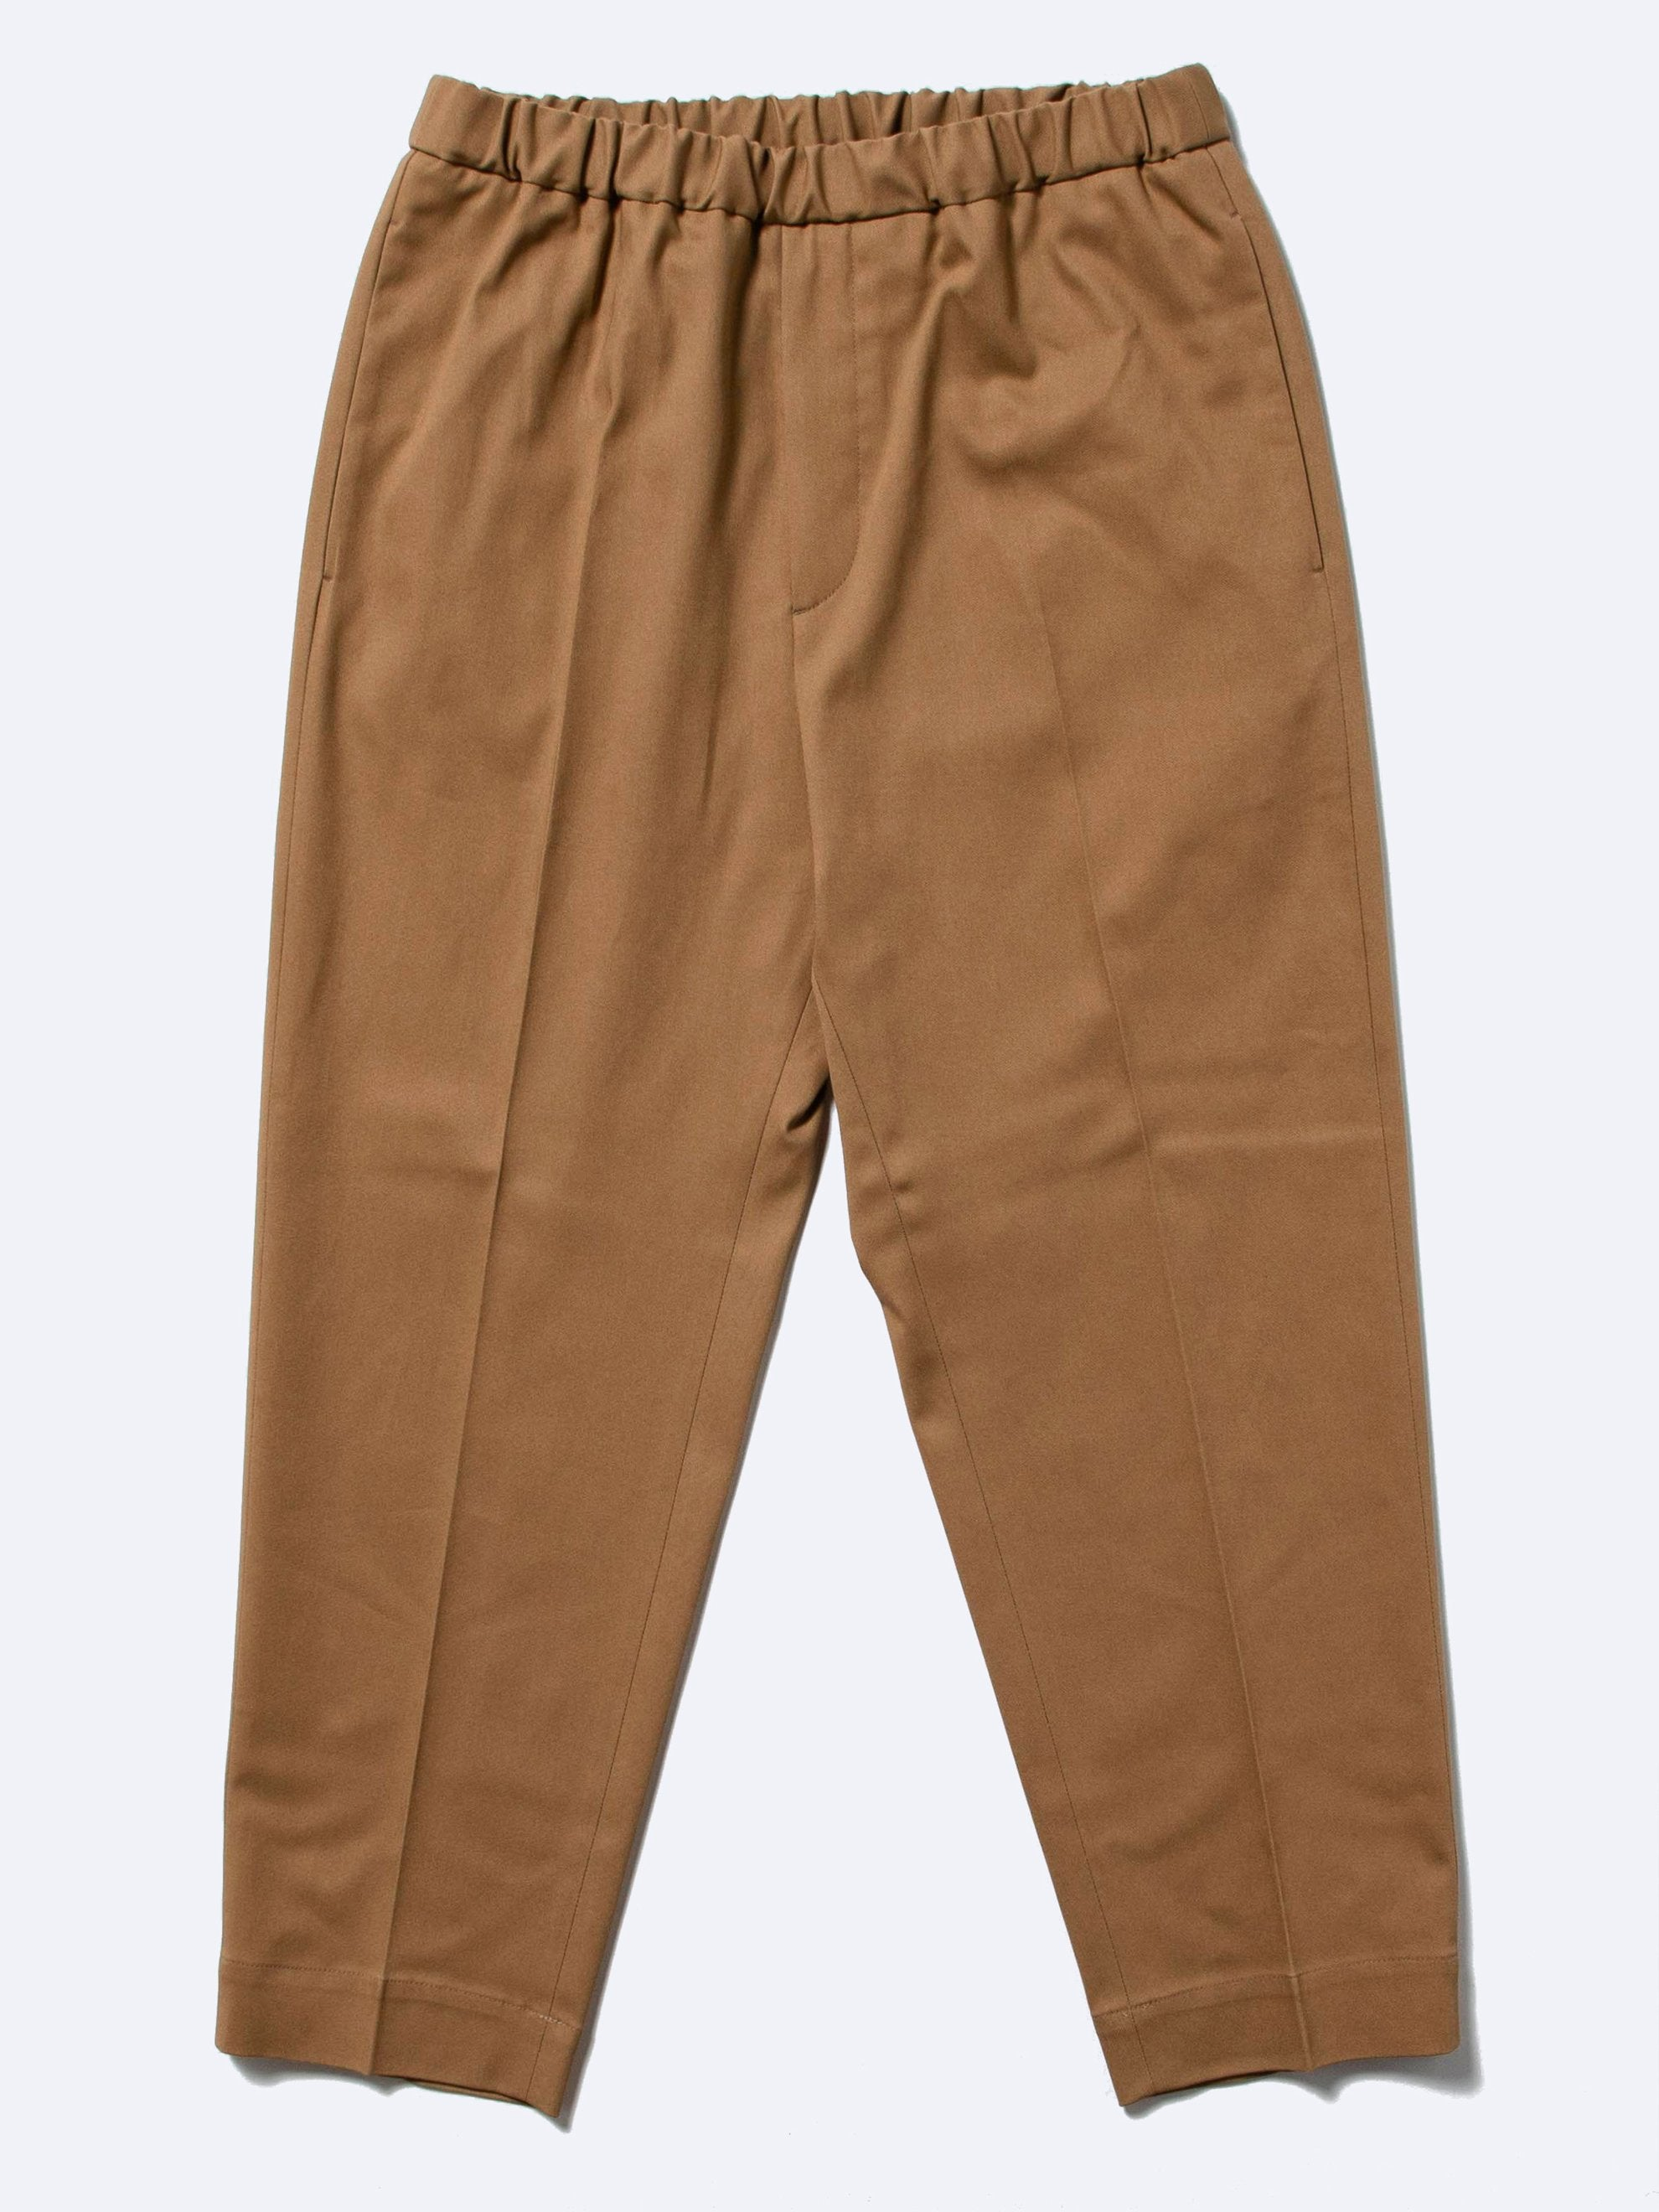 Medium Beige Tailored Priamo Pant 1